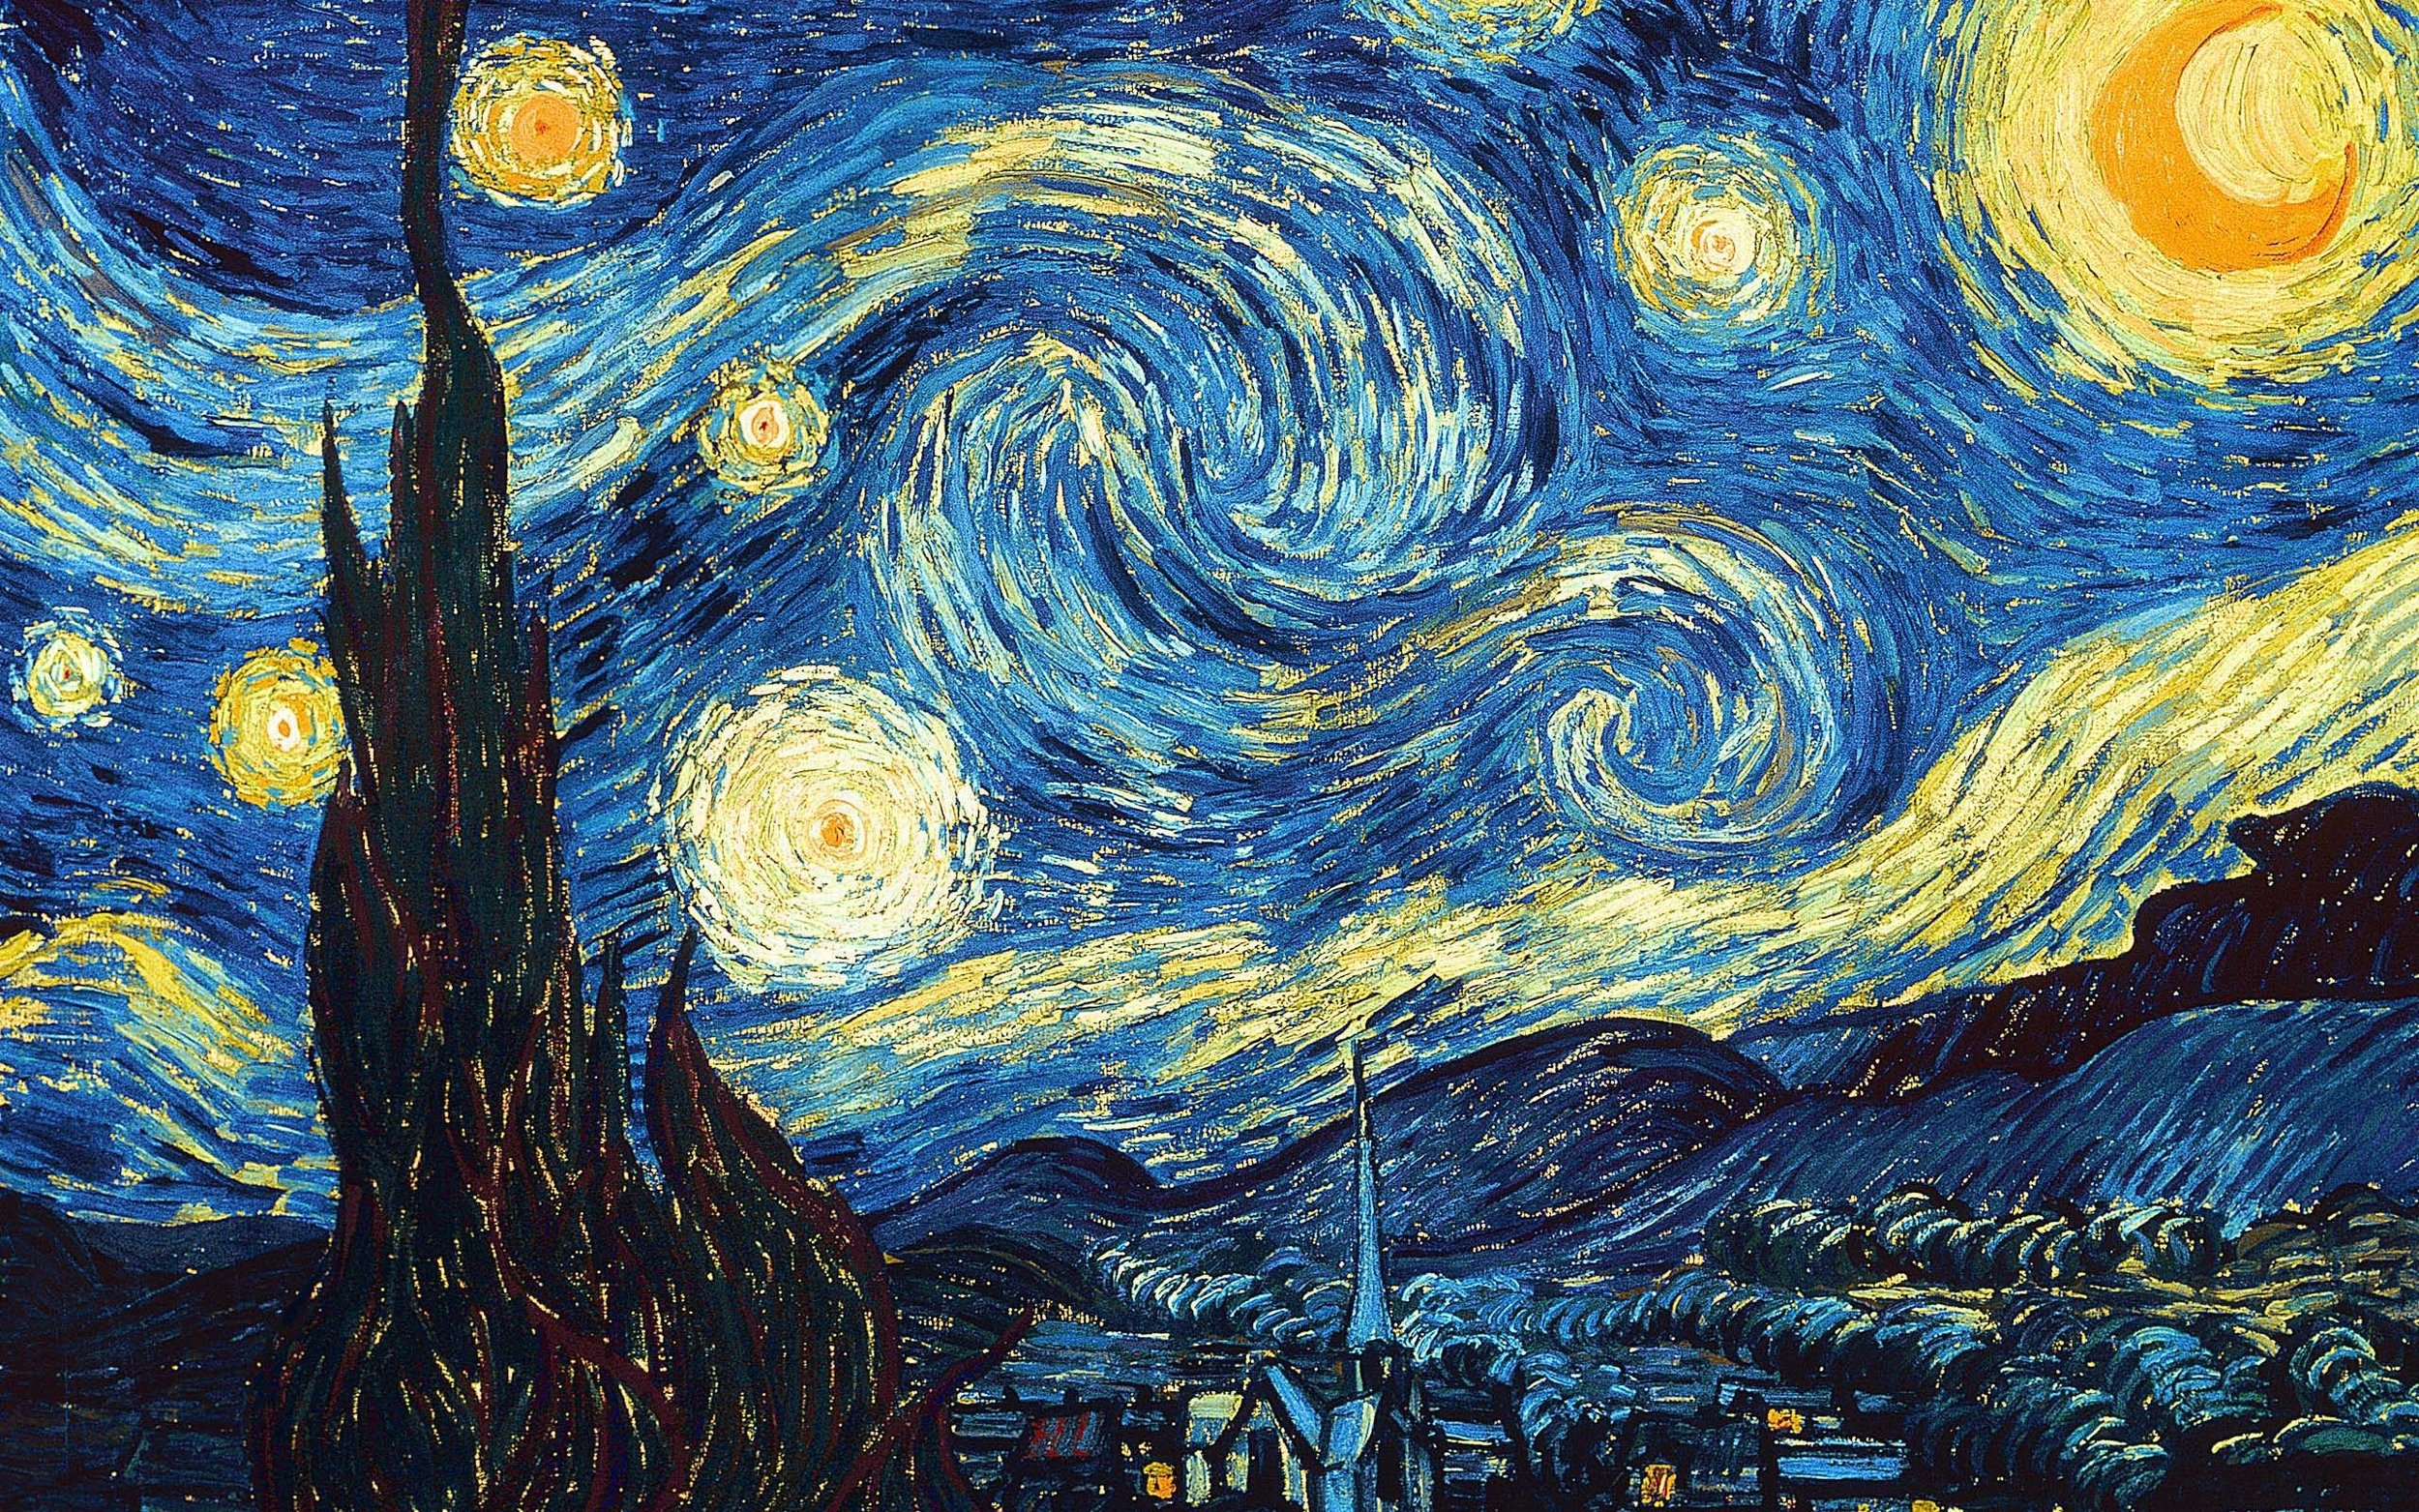 oil-painting-starry-sky-van-gogh-302707.jpg